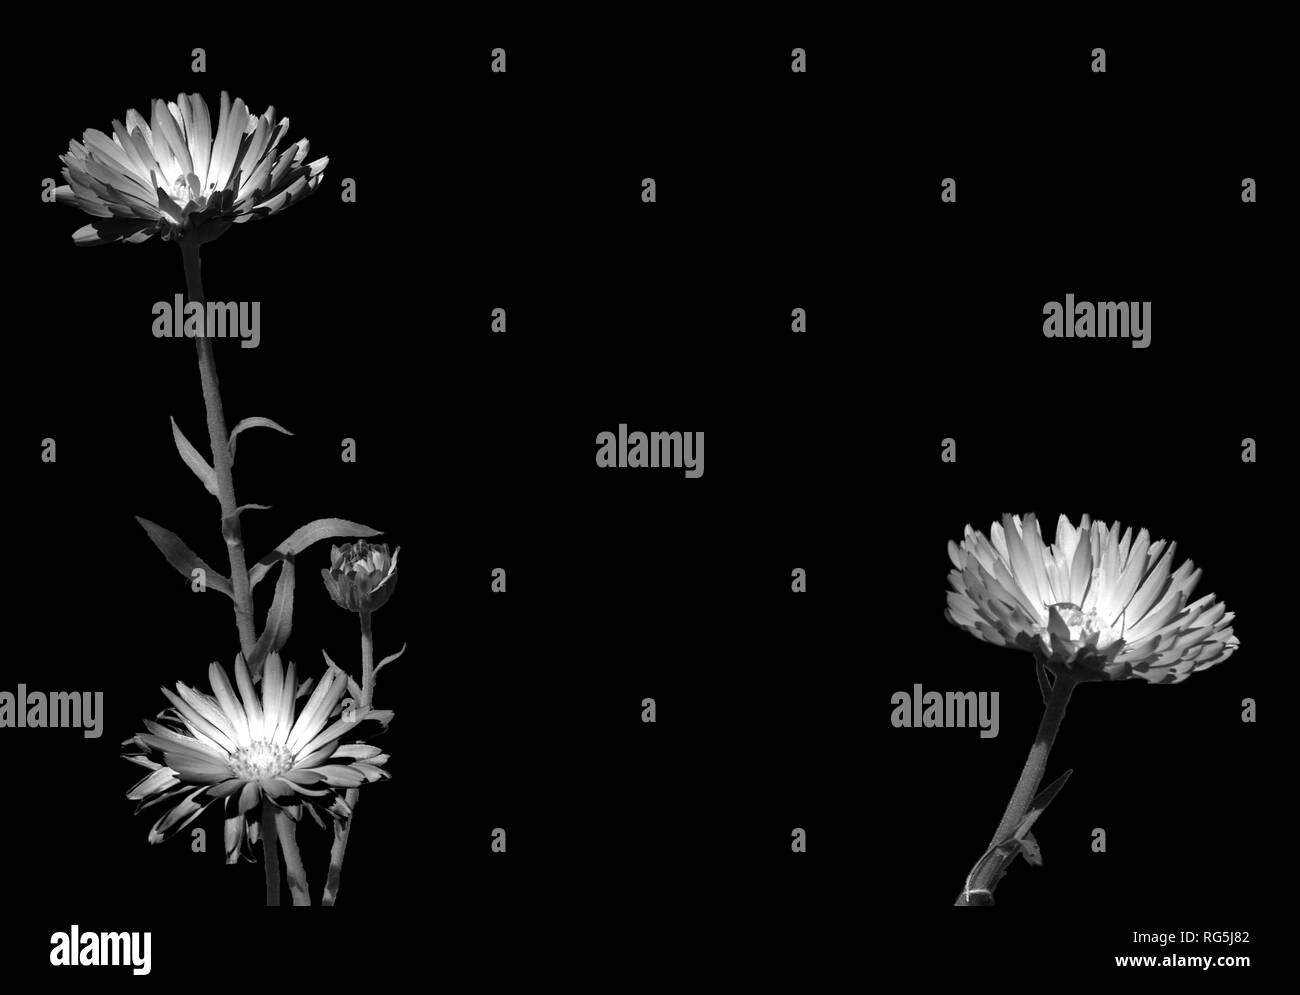 Black and white photo of three plants and their stems, with beautiful fluorescent flowers - Stock Image